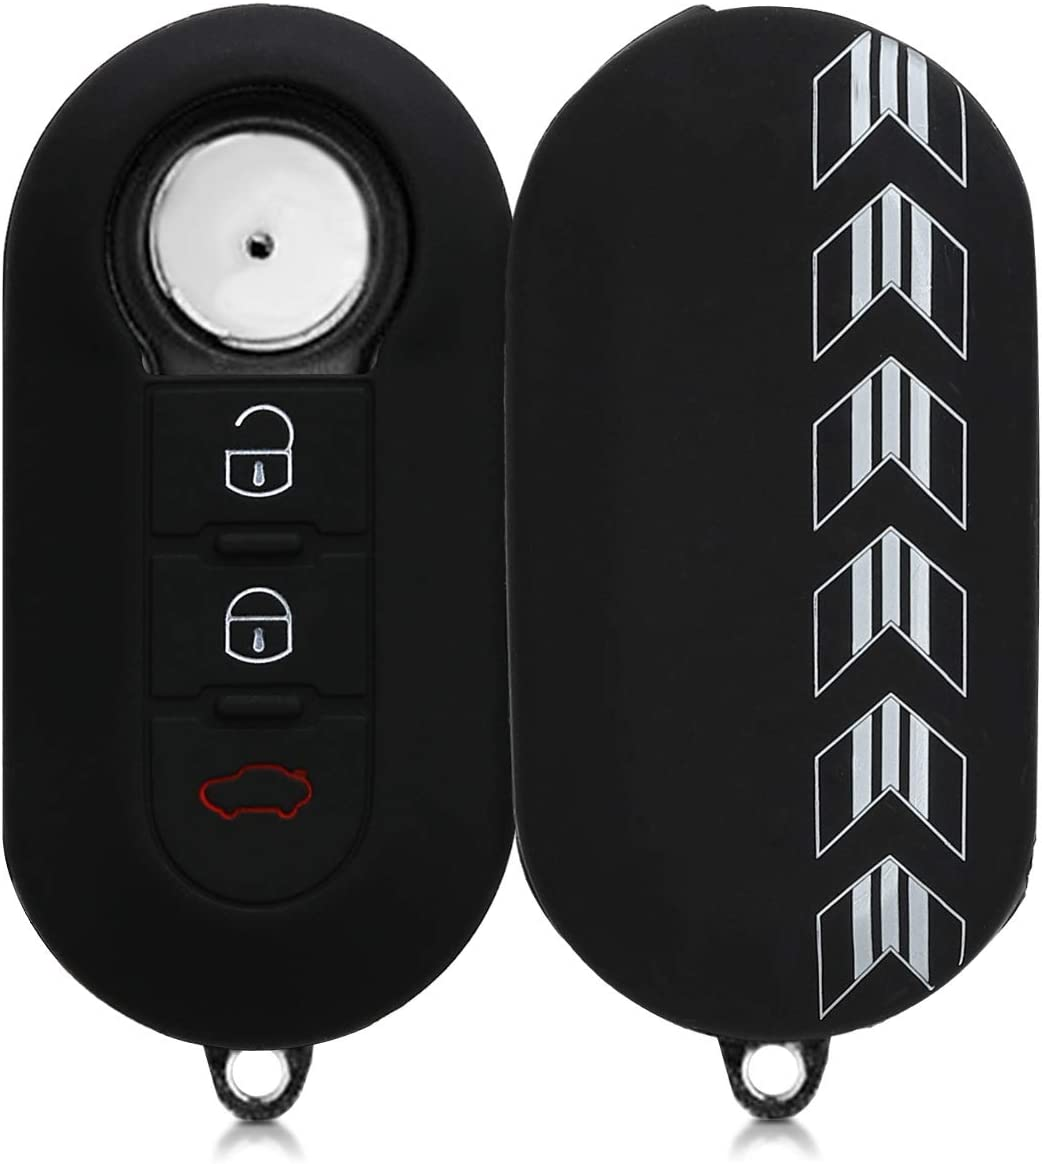 kwmobile Car Key Cover for Fiat Lancia Drive Me Crazy White//Black Silicone Protective Key Fob Cover for Fiat Lancia 3 Button Car Flip Key